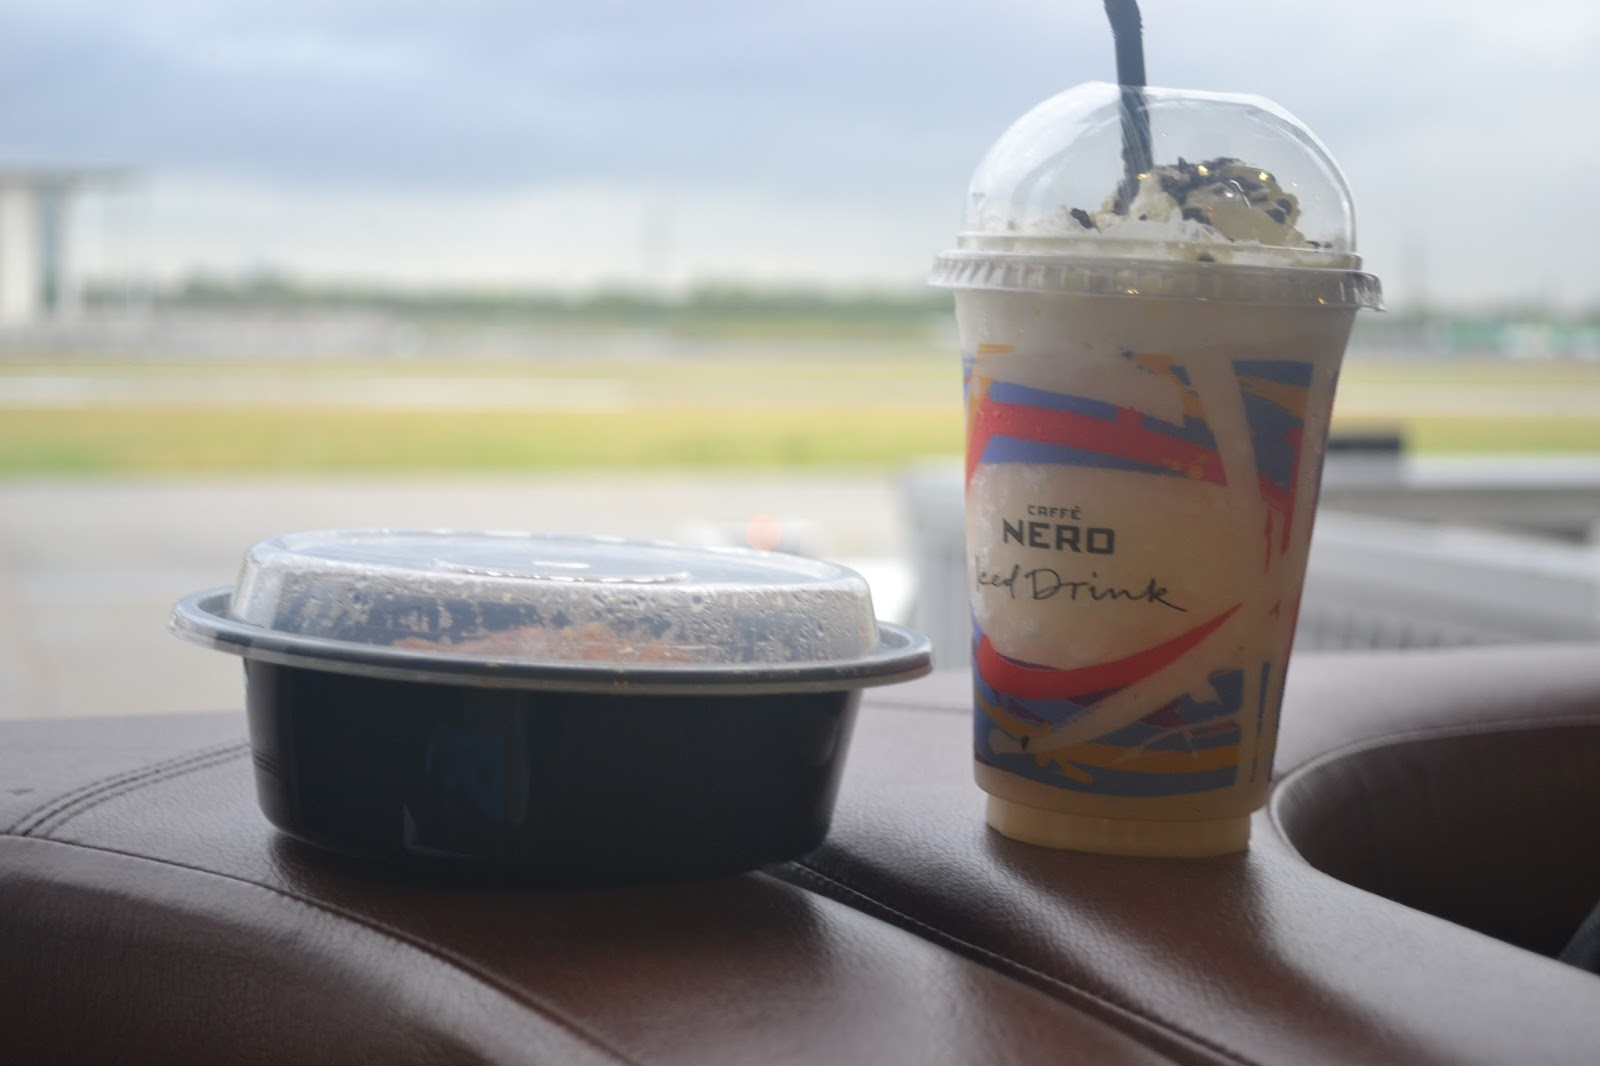 Caffe Nero Frappucino at the Airport